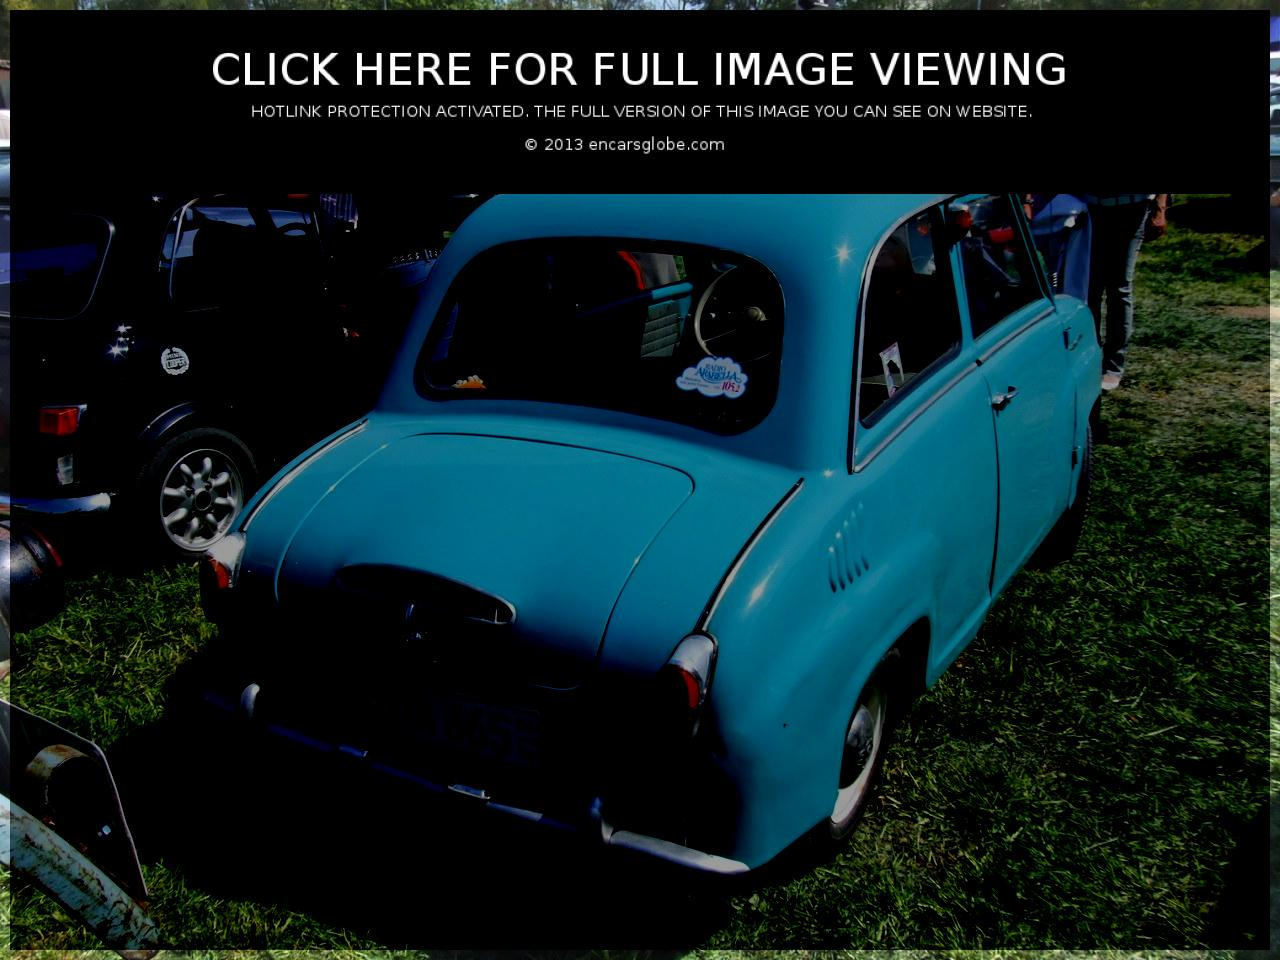 Glas Goggomobil Limousine: Photo gallery, complete information ...